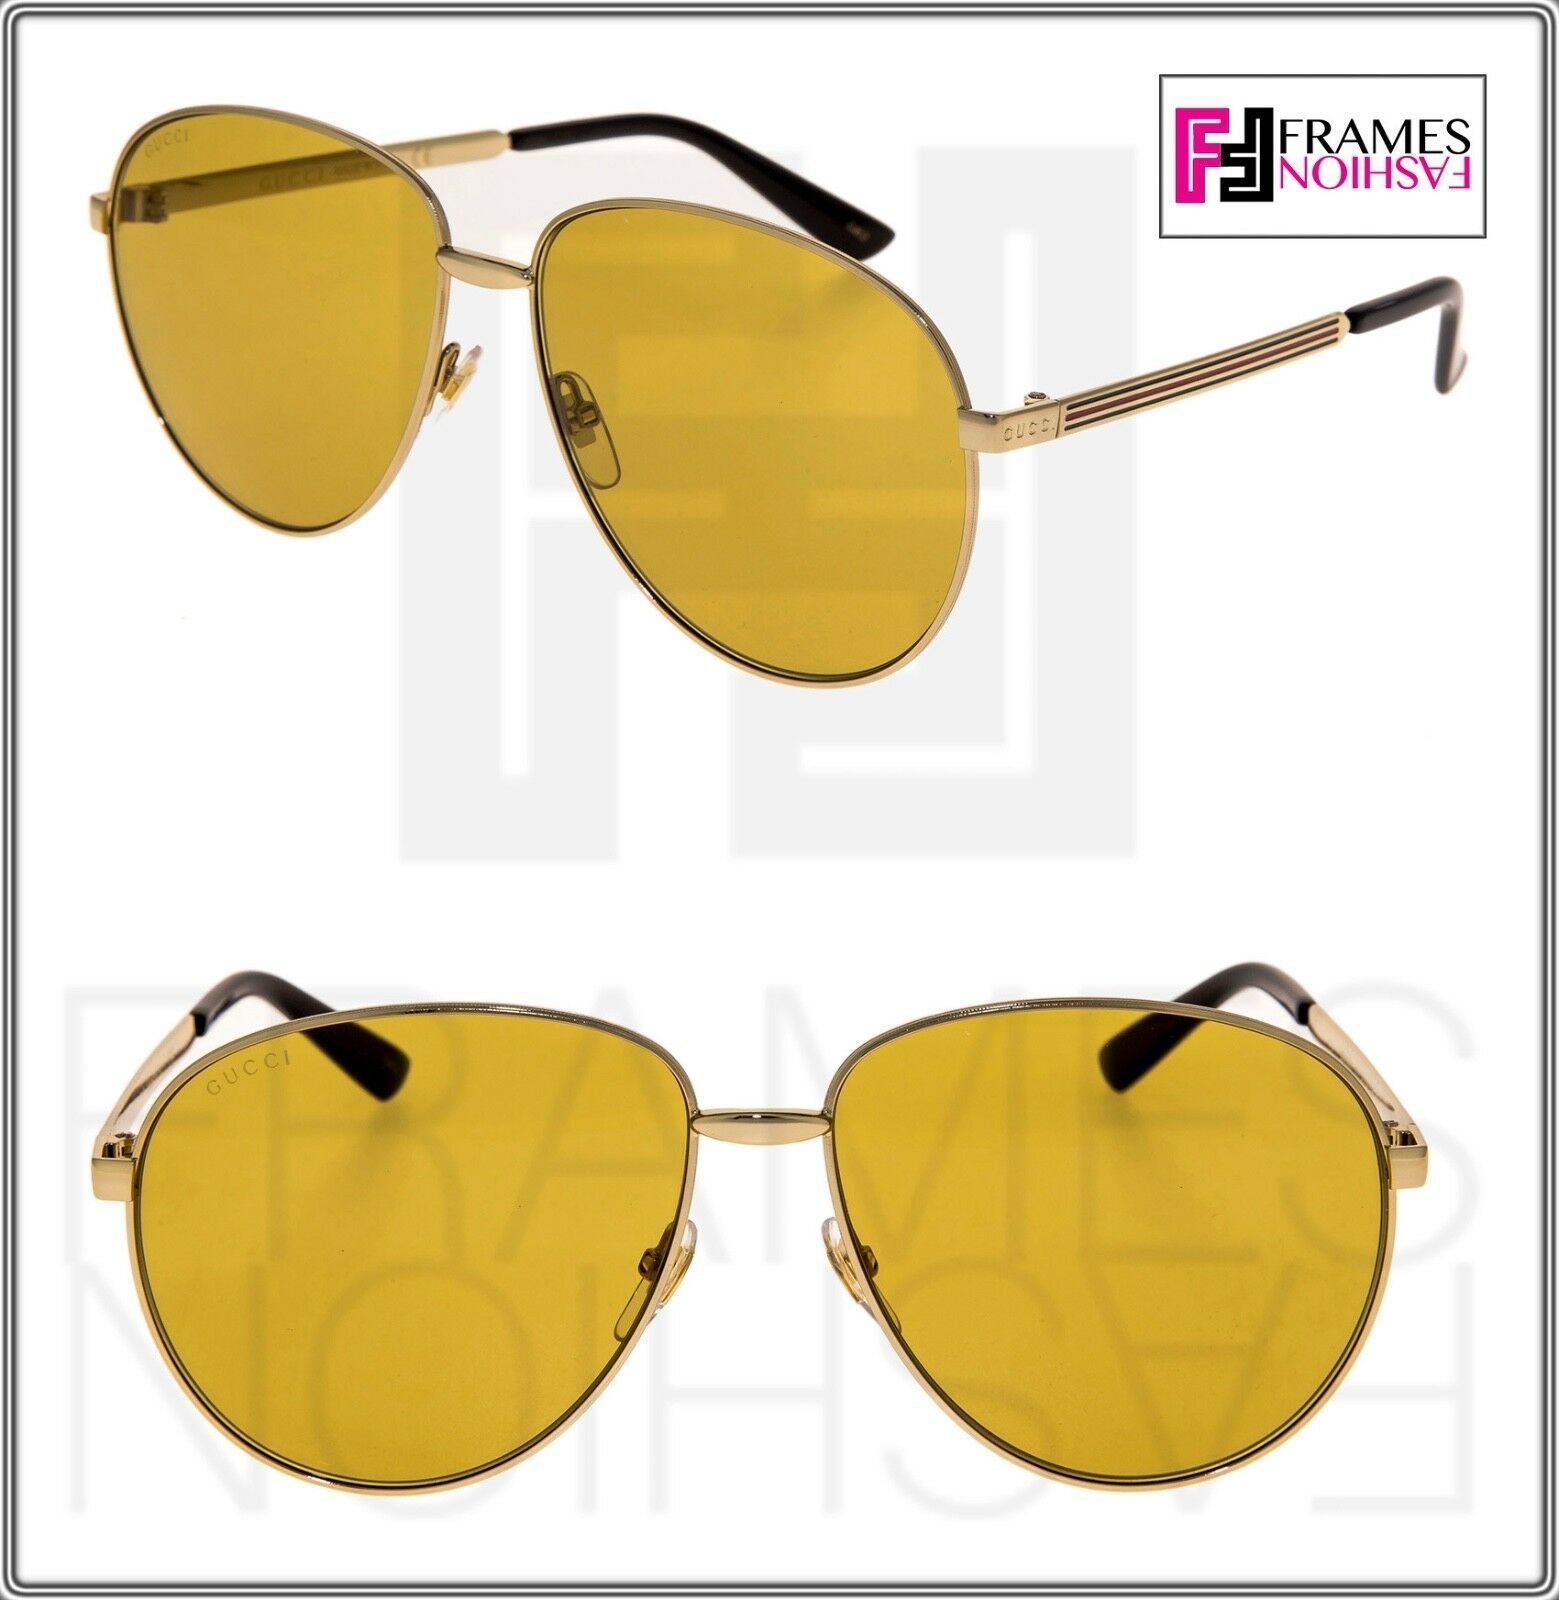 f6a02cdd1ba1 S l1600. S l1600. Previous. GUCCI WEB 0138 Gold Metal Etched Aviator Yellow  Sunglasses 2280 GG0138 Unisex